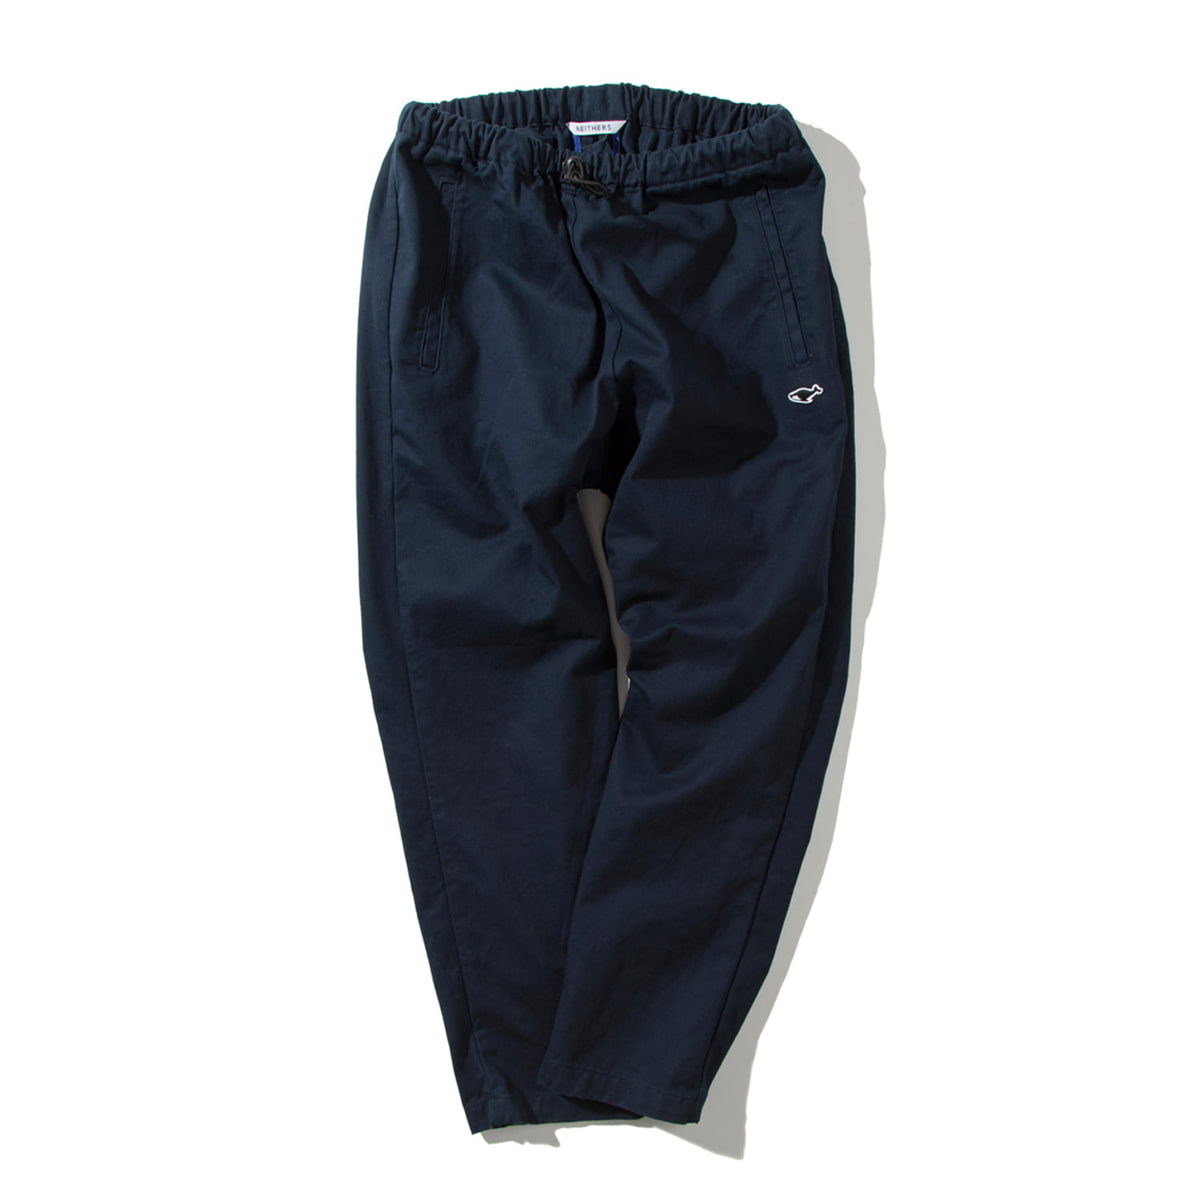 [NEITHERS] 312-1 MEDICAL PANTS RETRO 'NAVY'